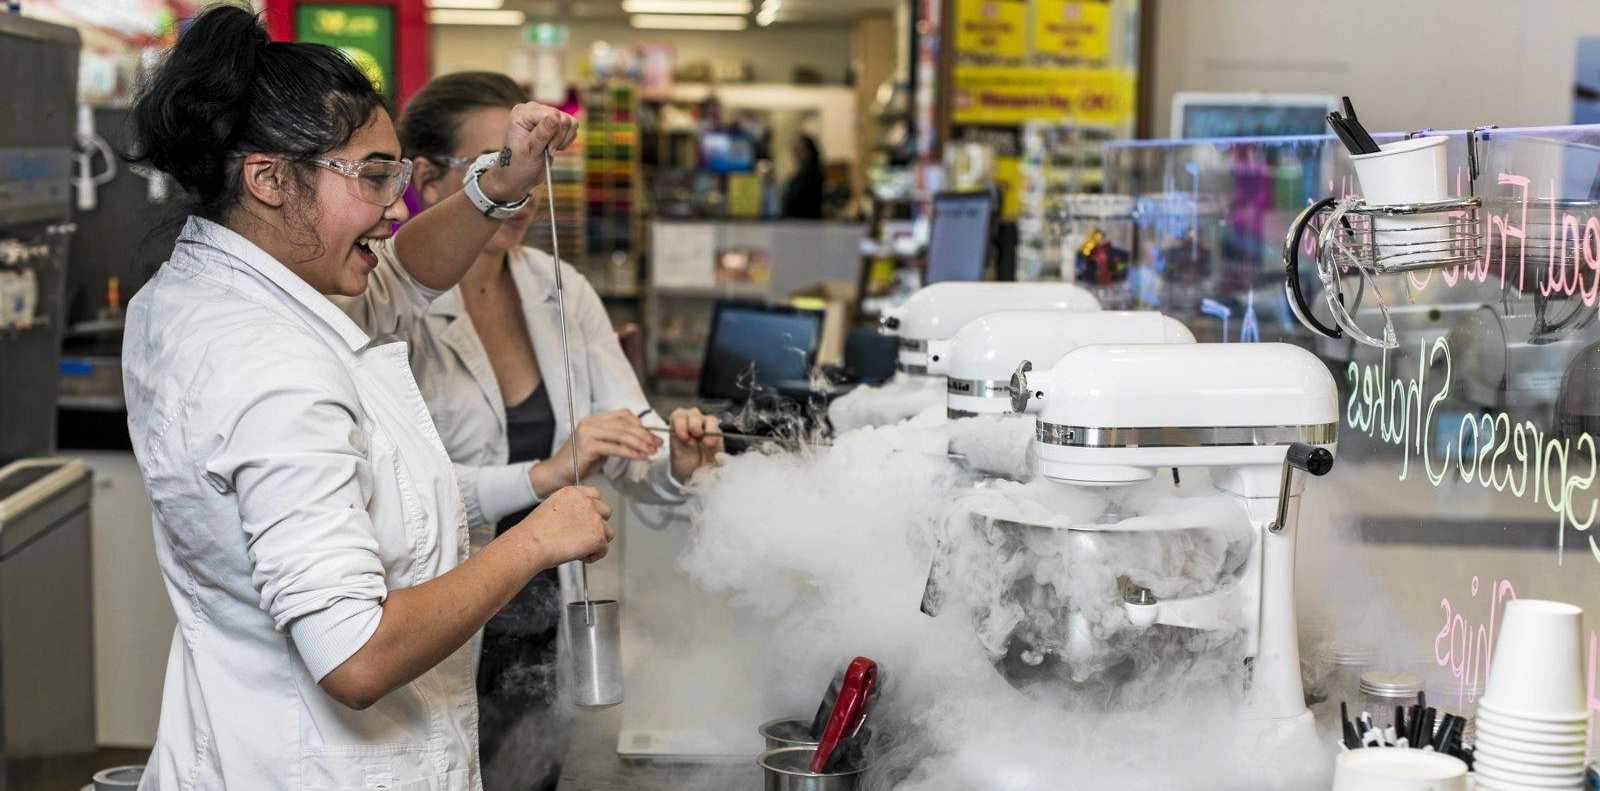 SWEET SUCCESS: The Laboratory is one of three businesses that opened recently in Parkside Plaza.